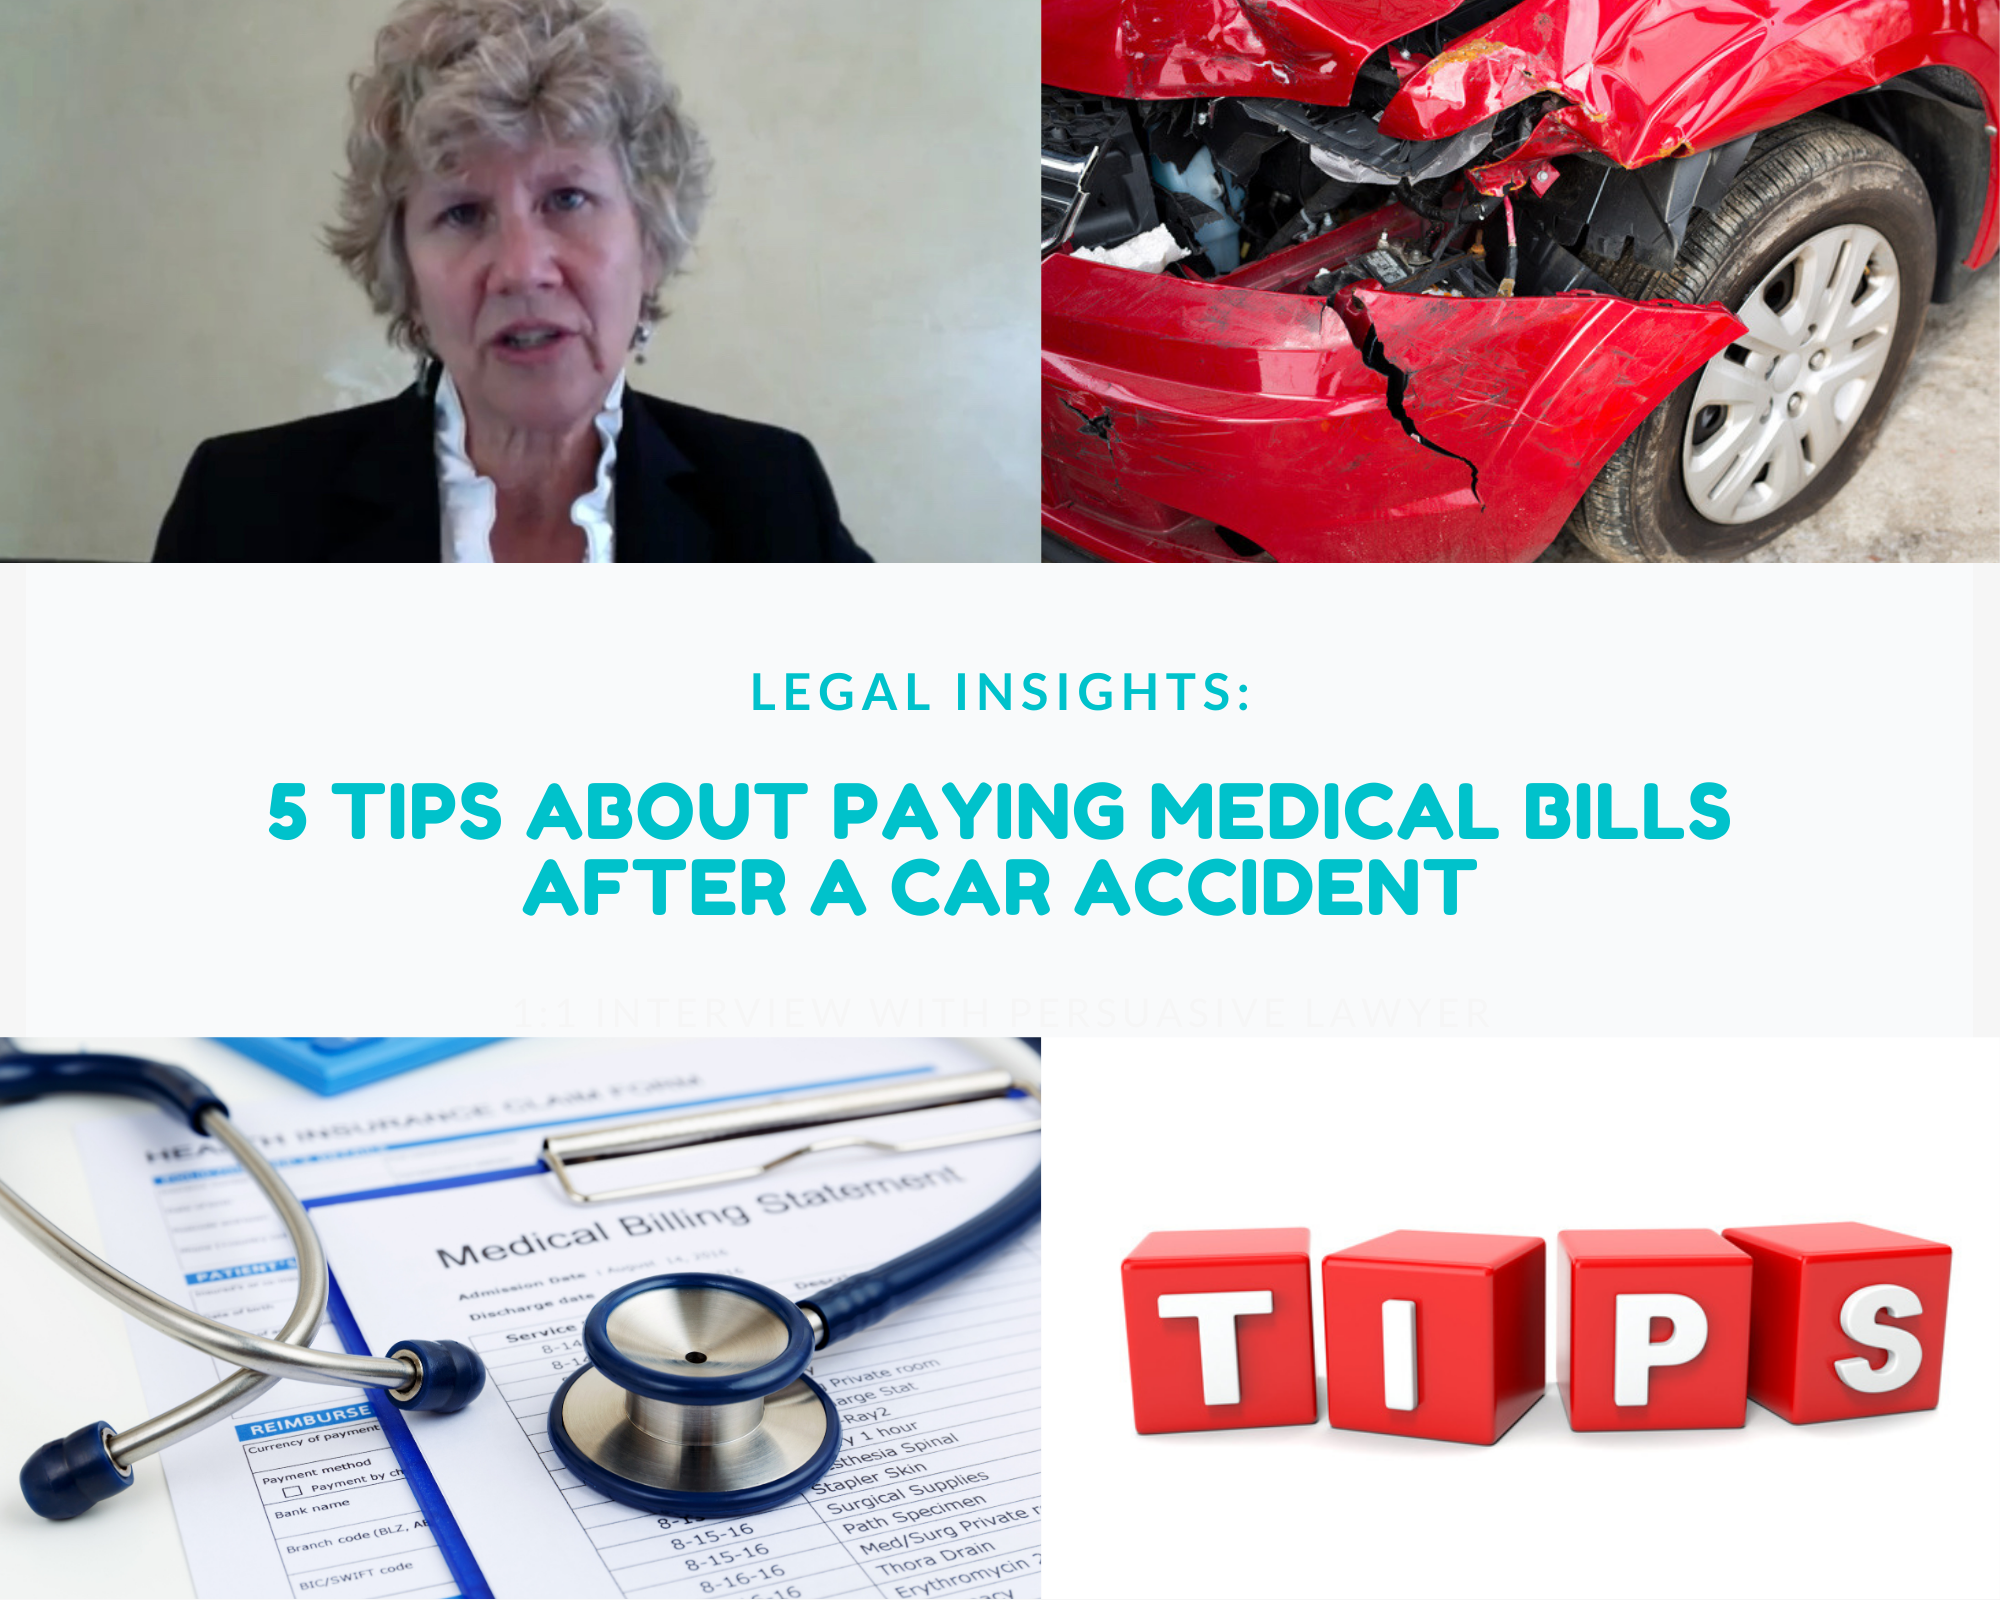 5 tips about paying medical bills after a car accident